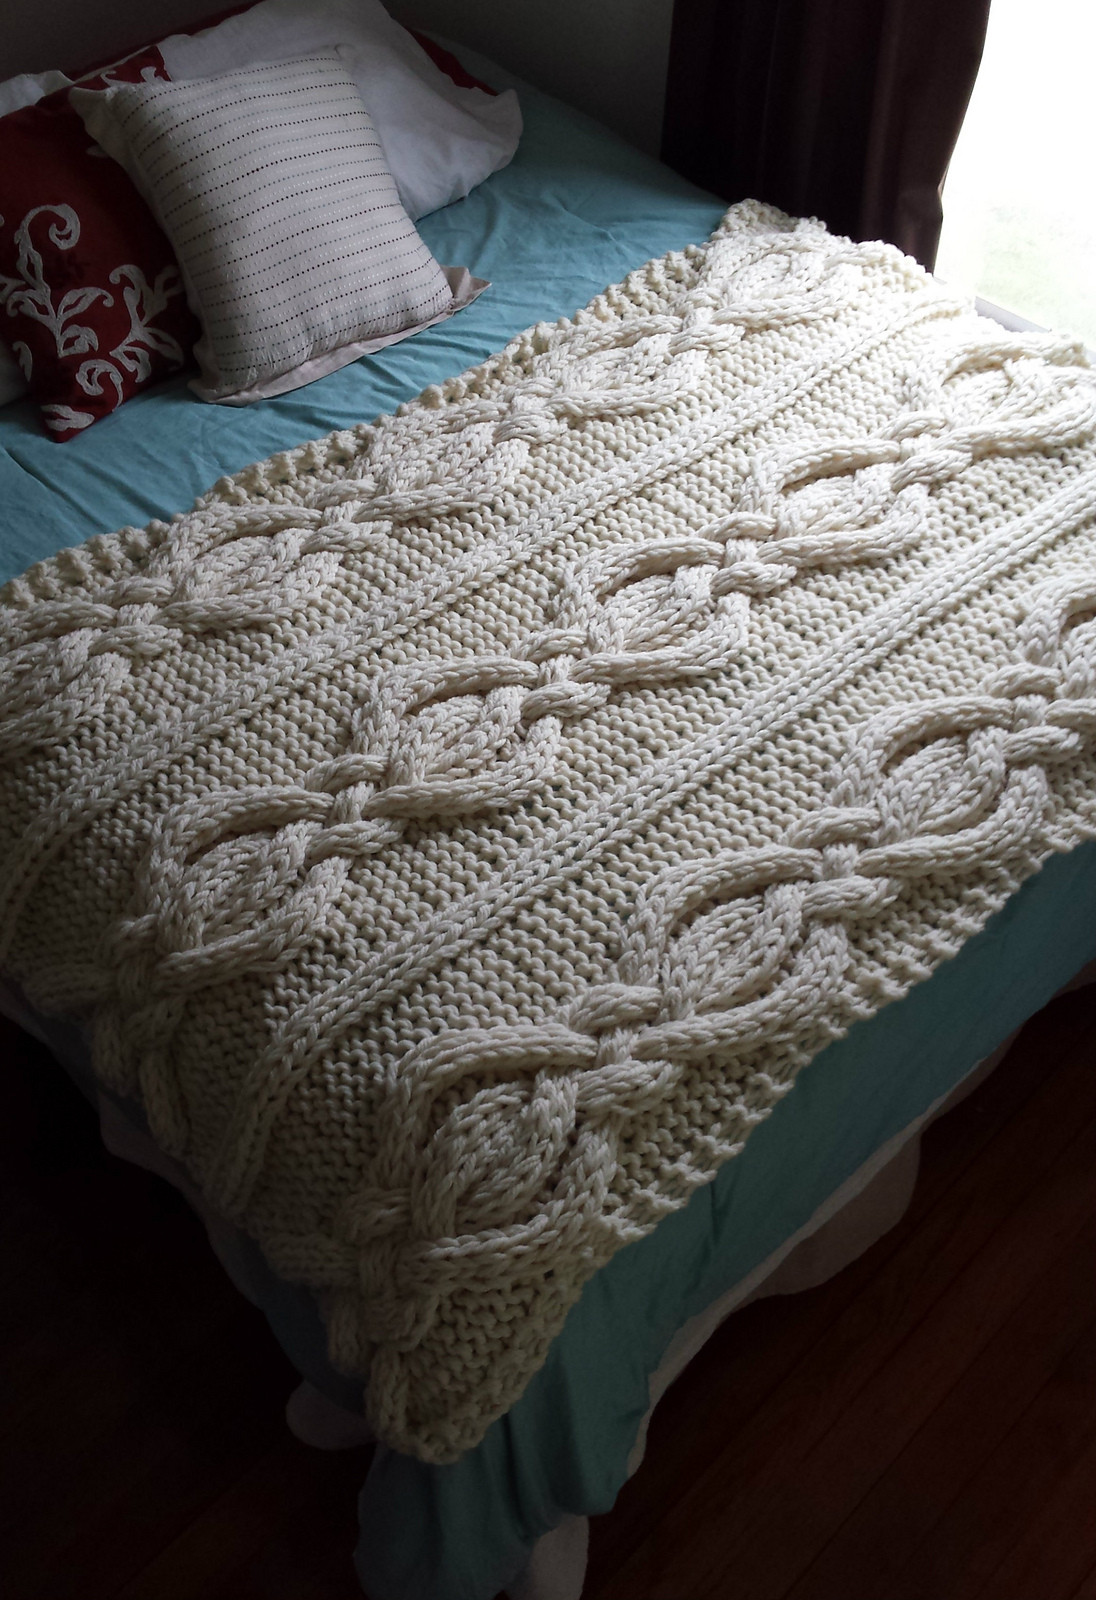 Cable Knit Blanket Awesome Cable Afghan Knitting Patterns Of Incredible 49 Pictures Cable Knit Blanket